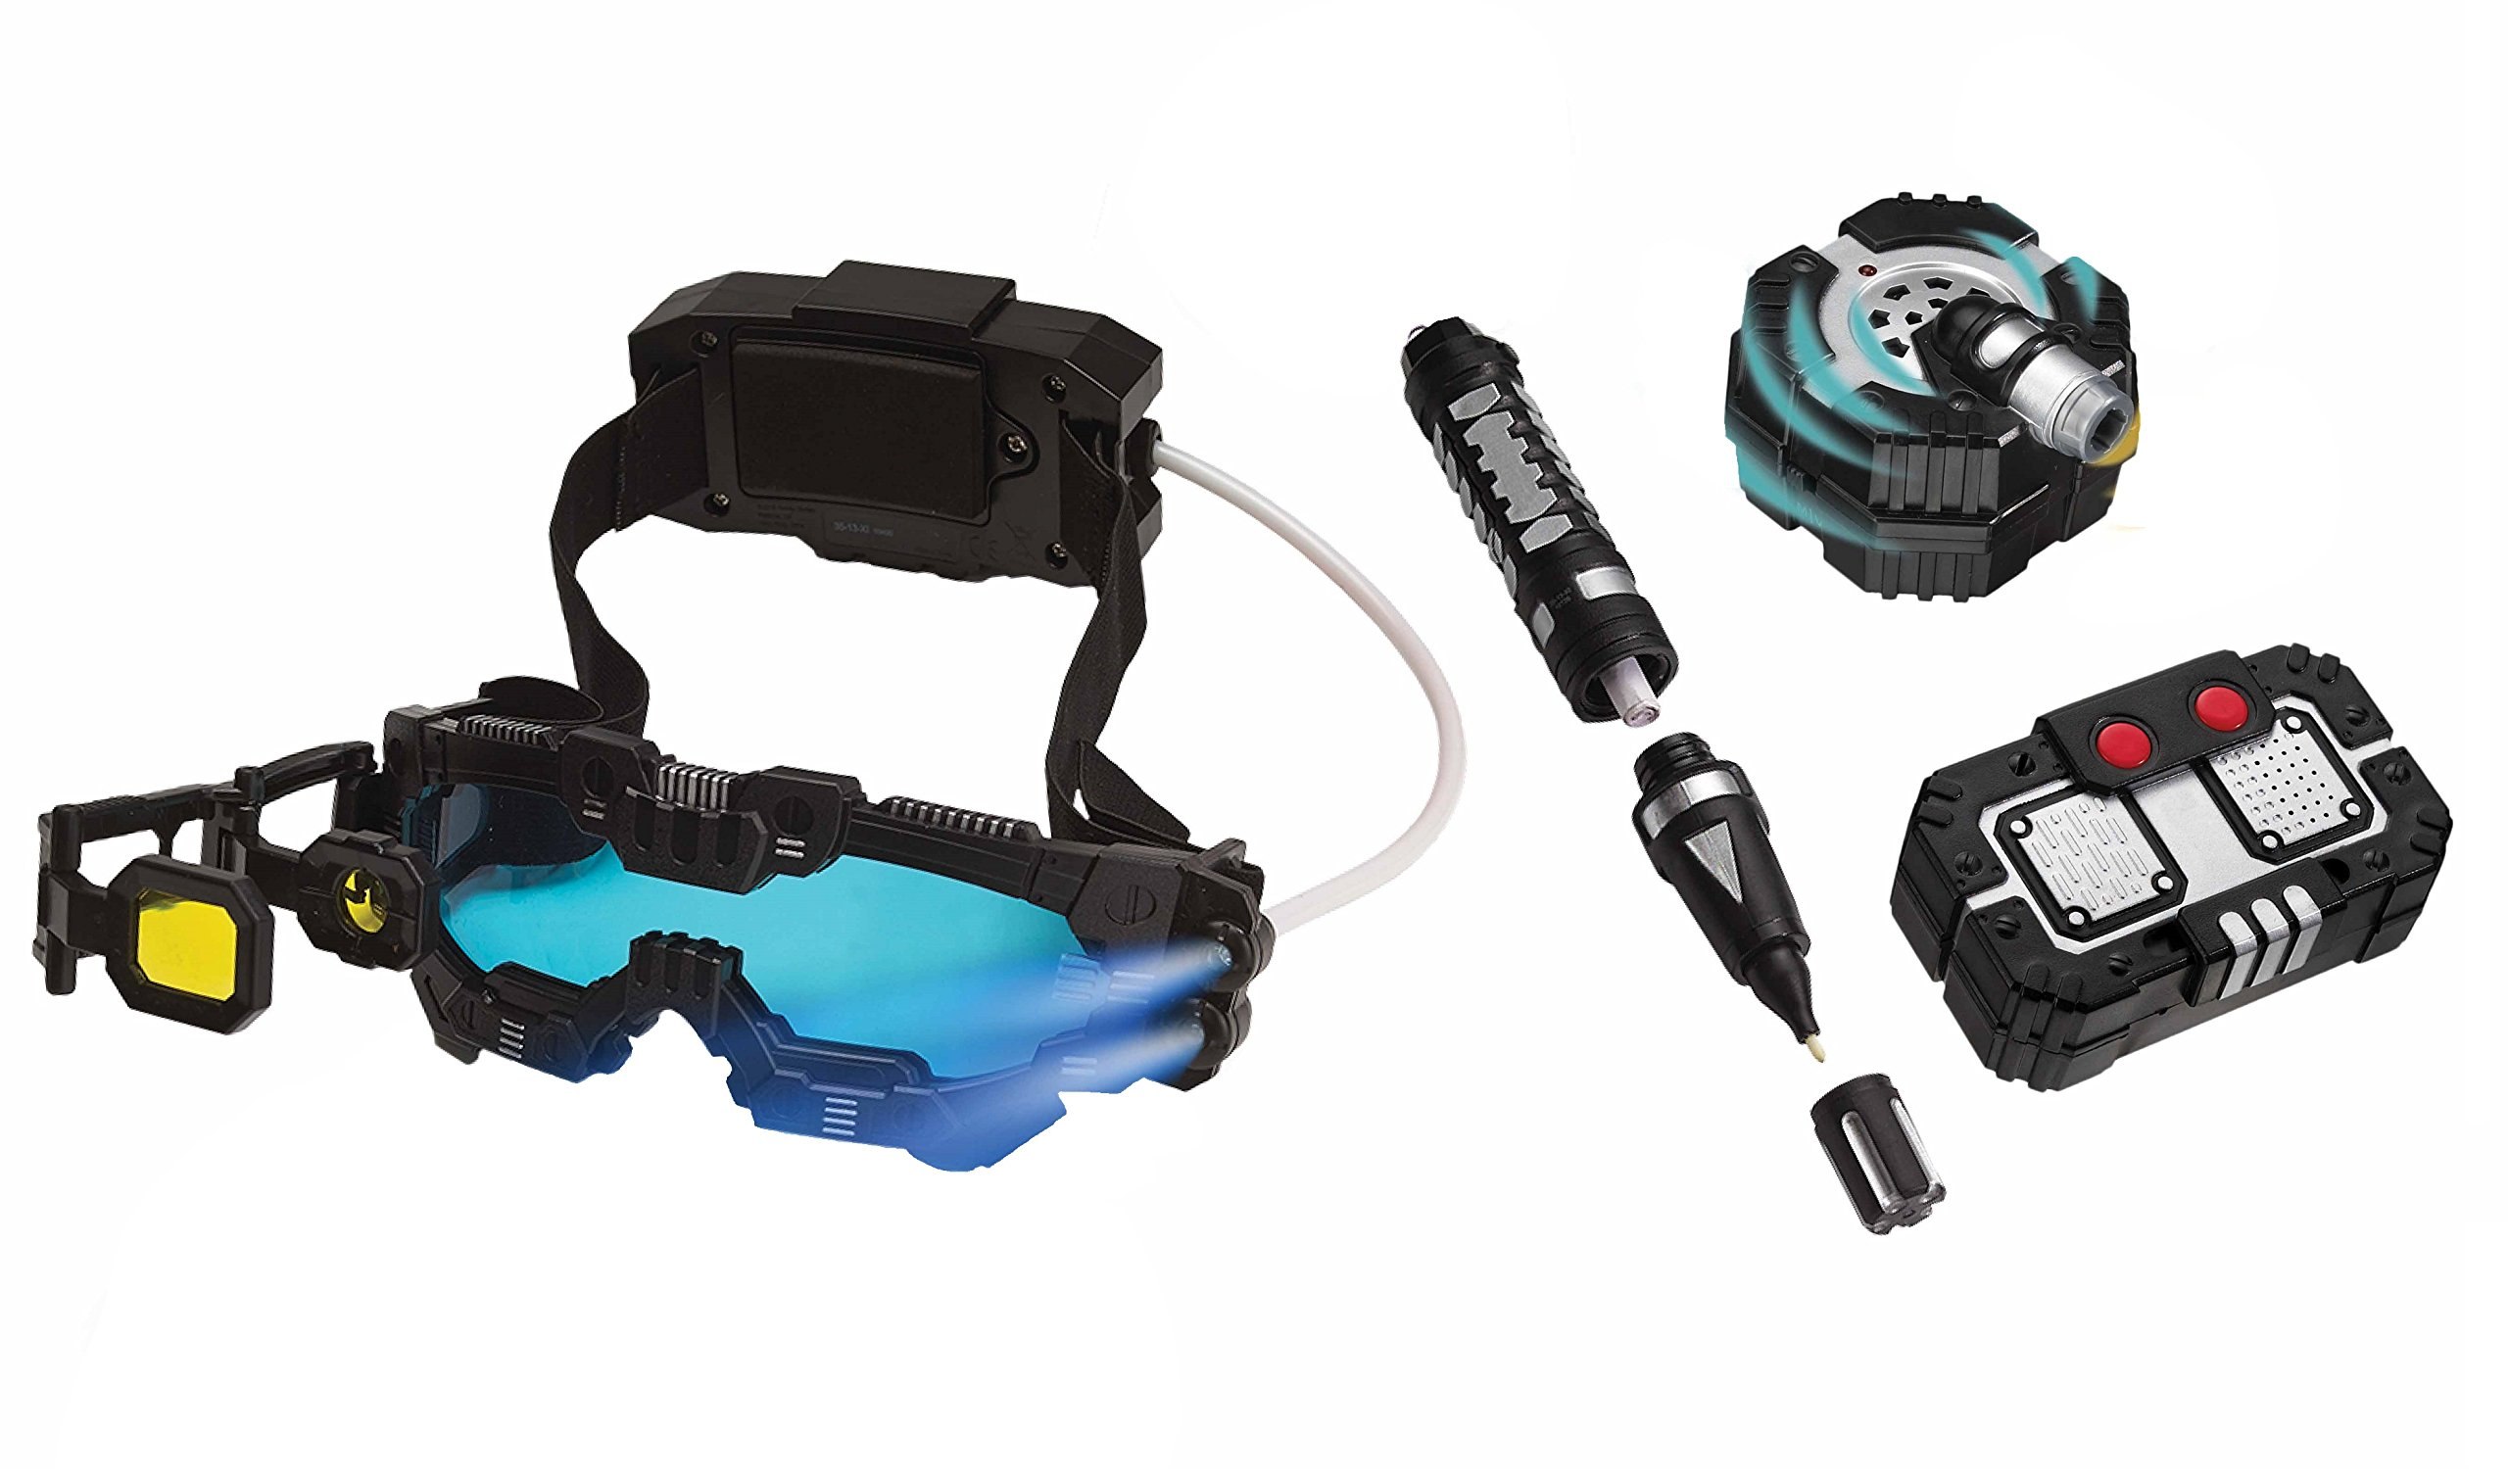 SpyX / Night Ranger Set - Includes Night Mission Goggles / Motion Alarm / Voice Disguiser / Invisible Ink Pen. by SpyX